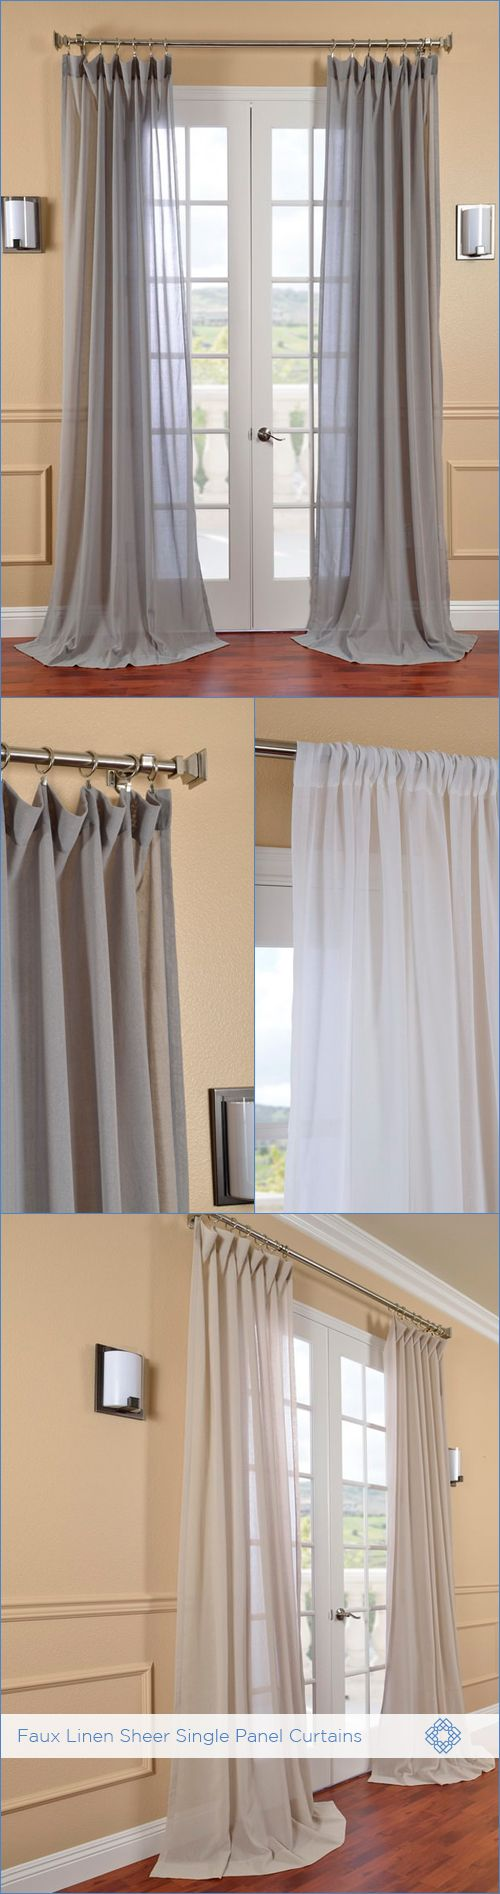 save up to 60 with these faux linen sheer curtains our faux linen sheer curtains u0026 drapeshome goodswindow